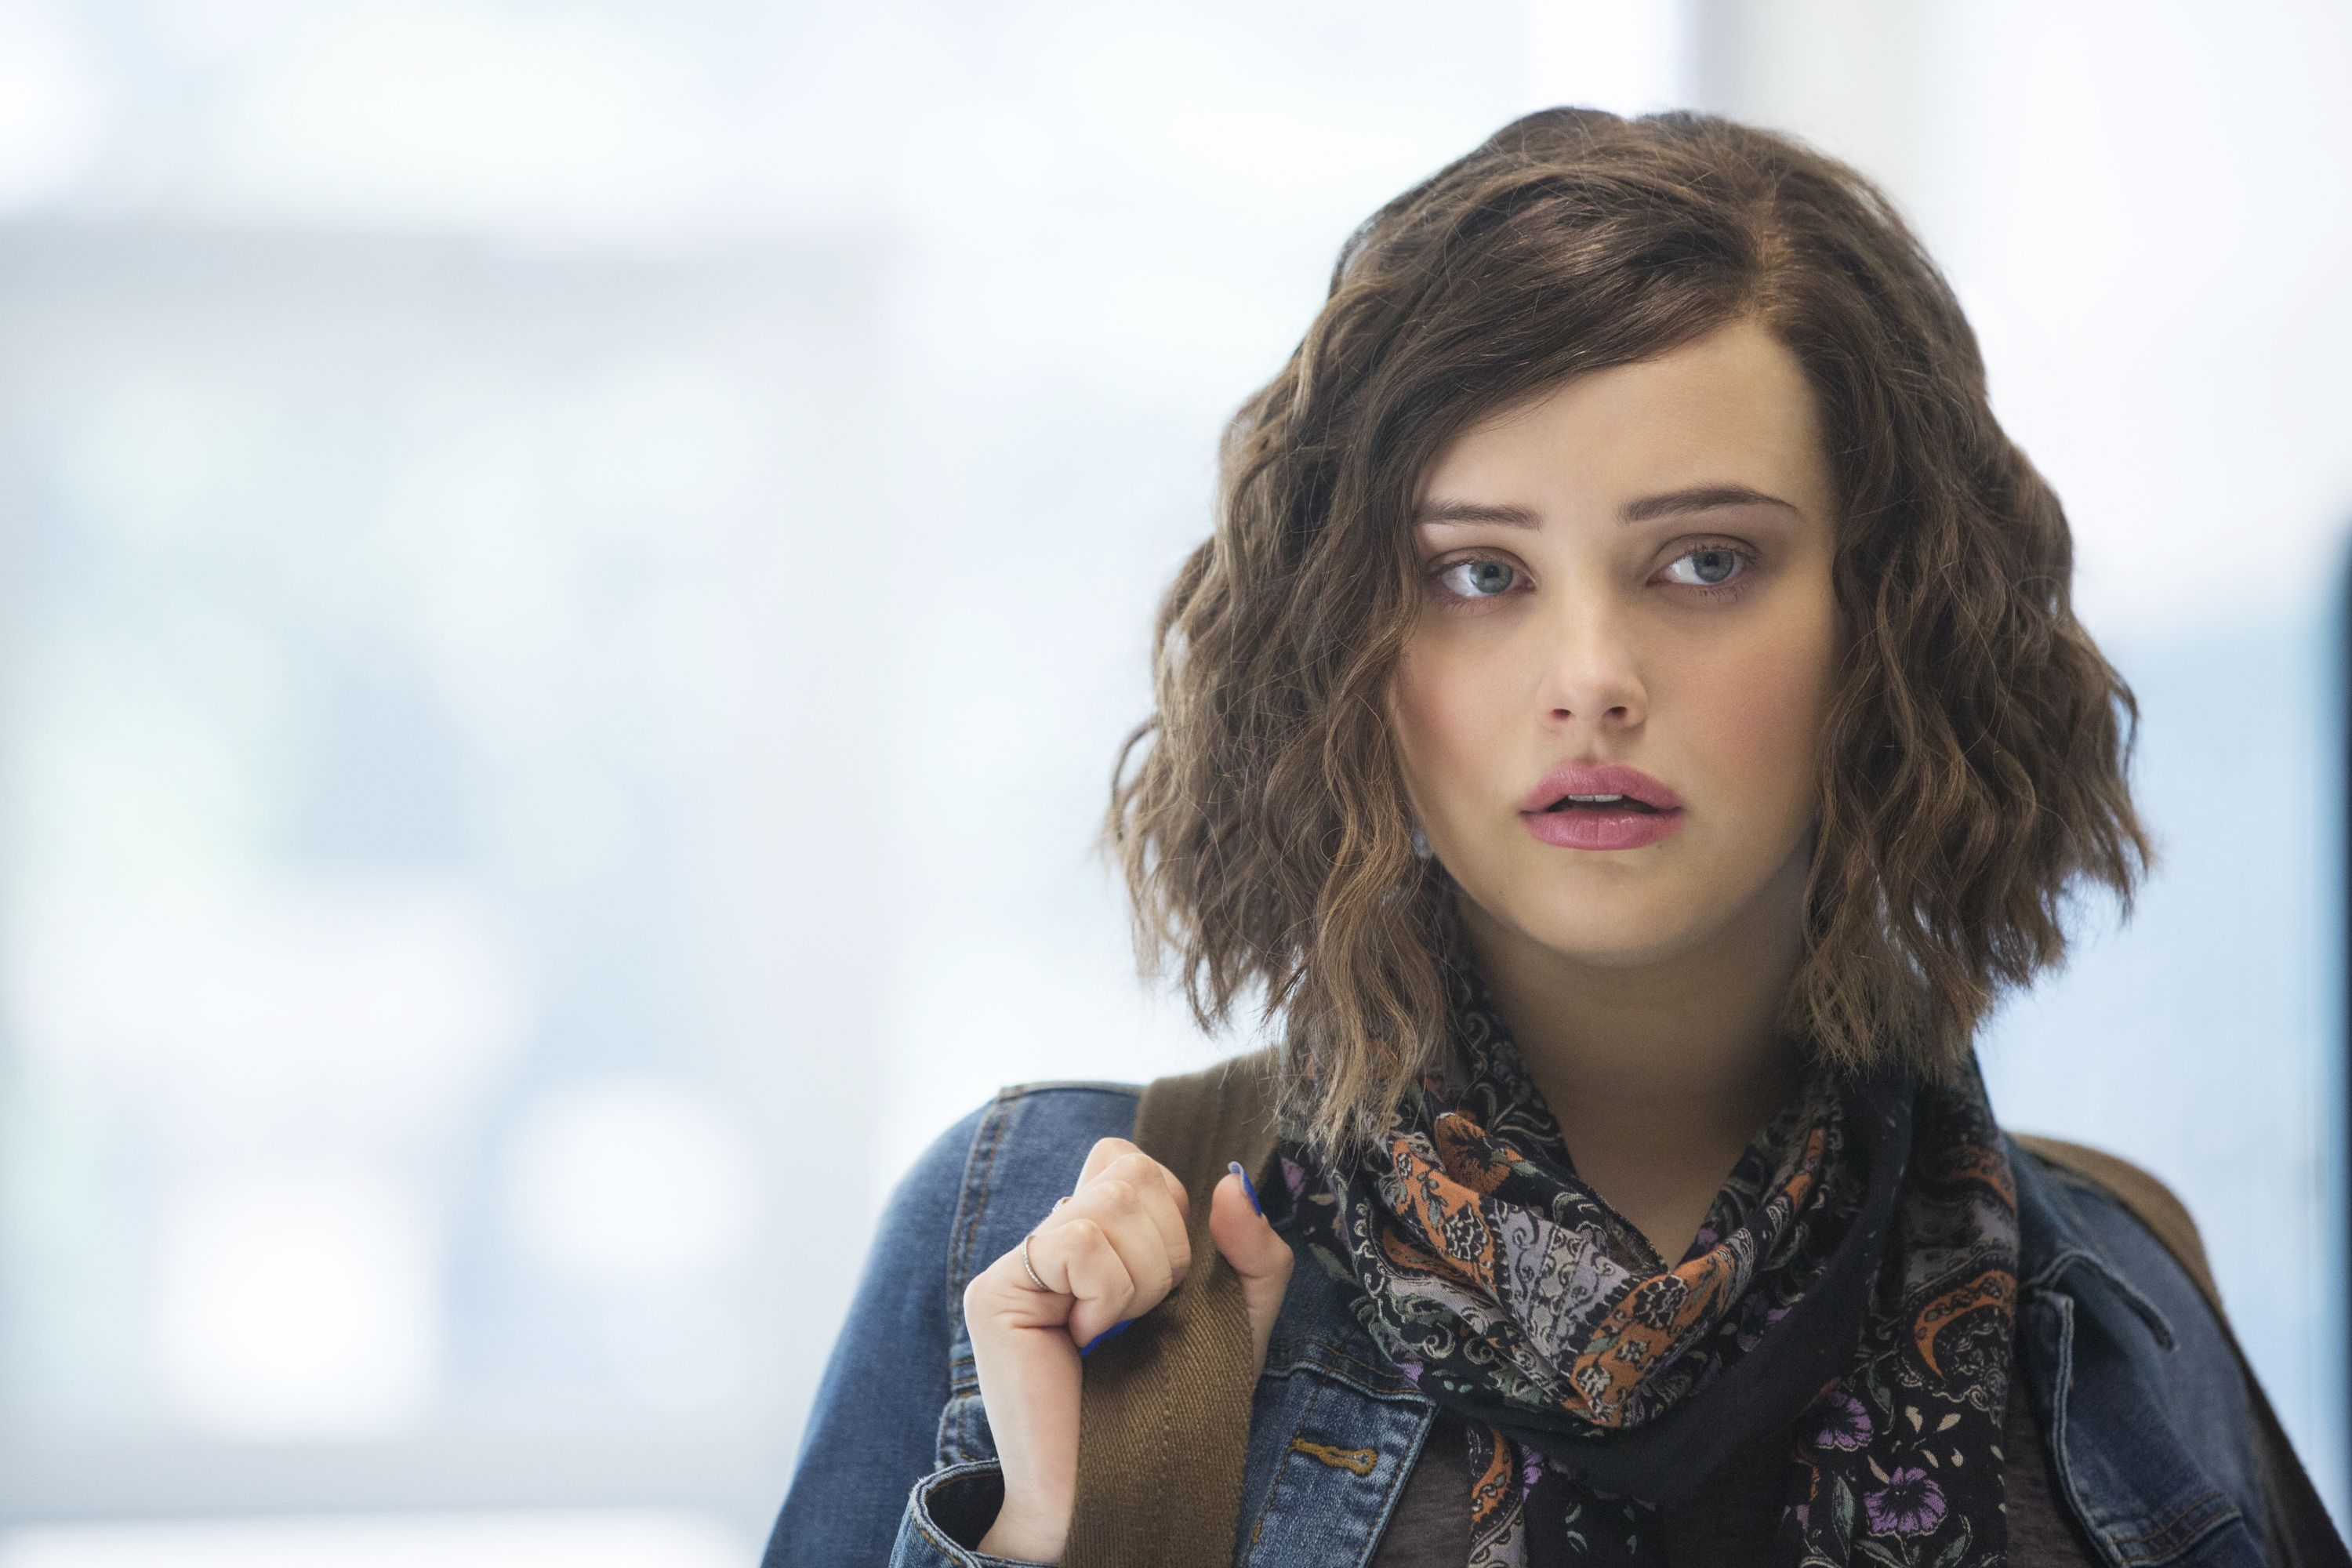 Hannah Baker holds onto the strap of her backpack while standing in a hallway